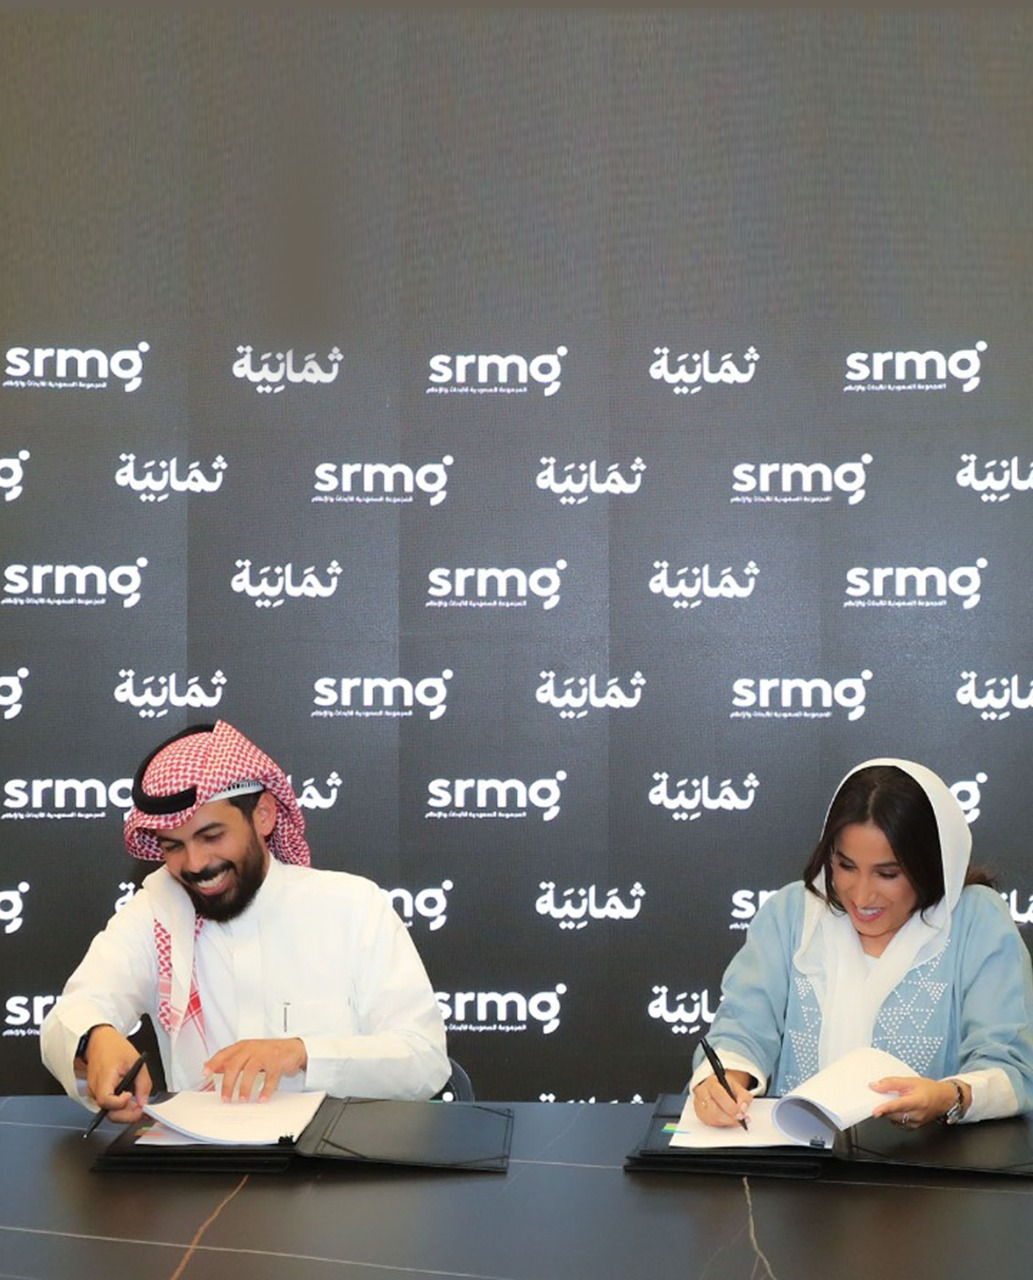 SRMG acquires 51% stake in podcast platform Thmanyah as part of new digital-first growth strategy